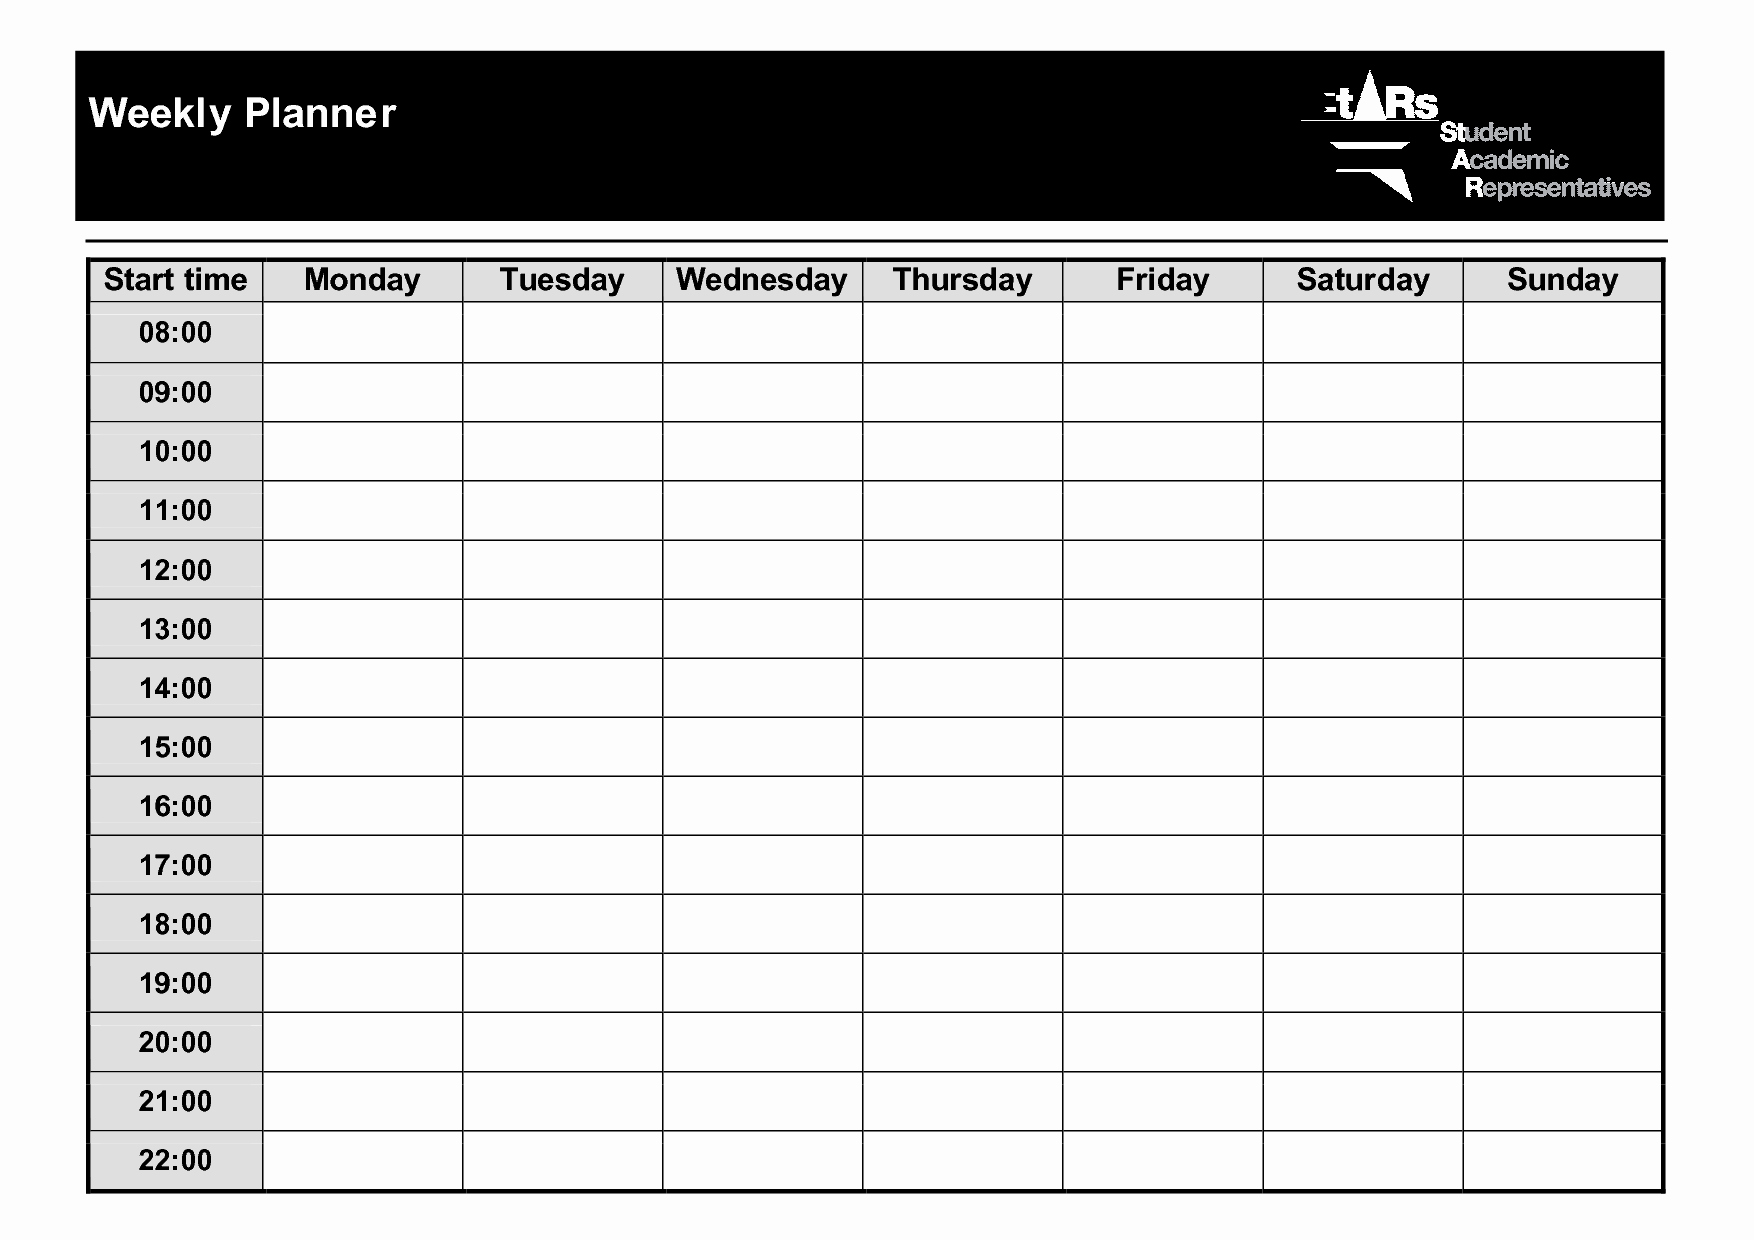 Weekly Planner Template Pdf Awesome Weekly Planner Template Pdf – Planner Template Free